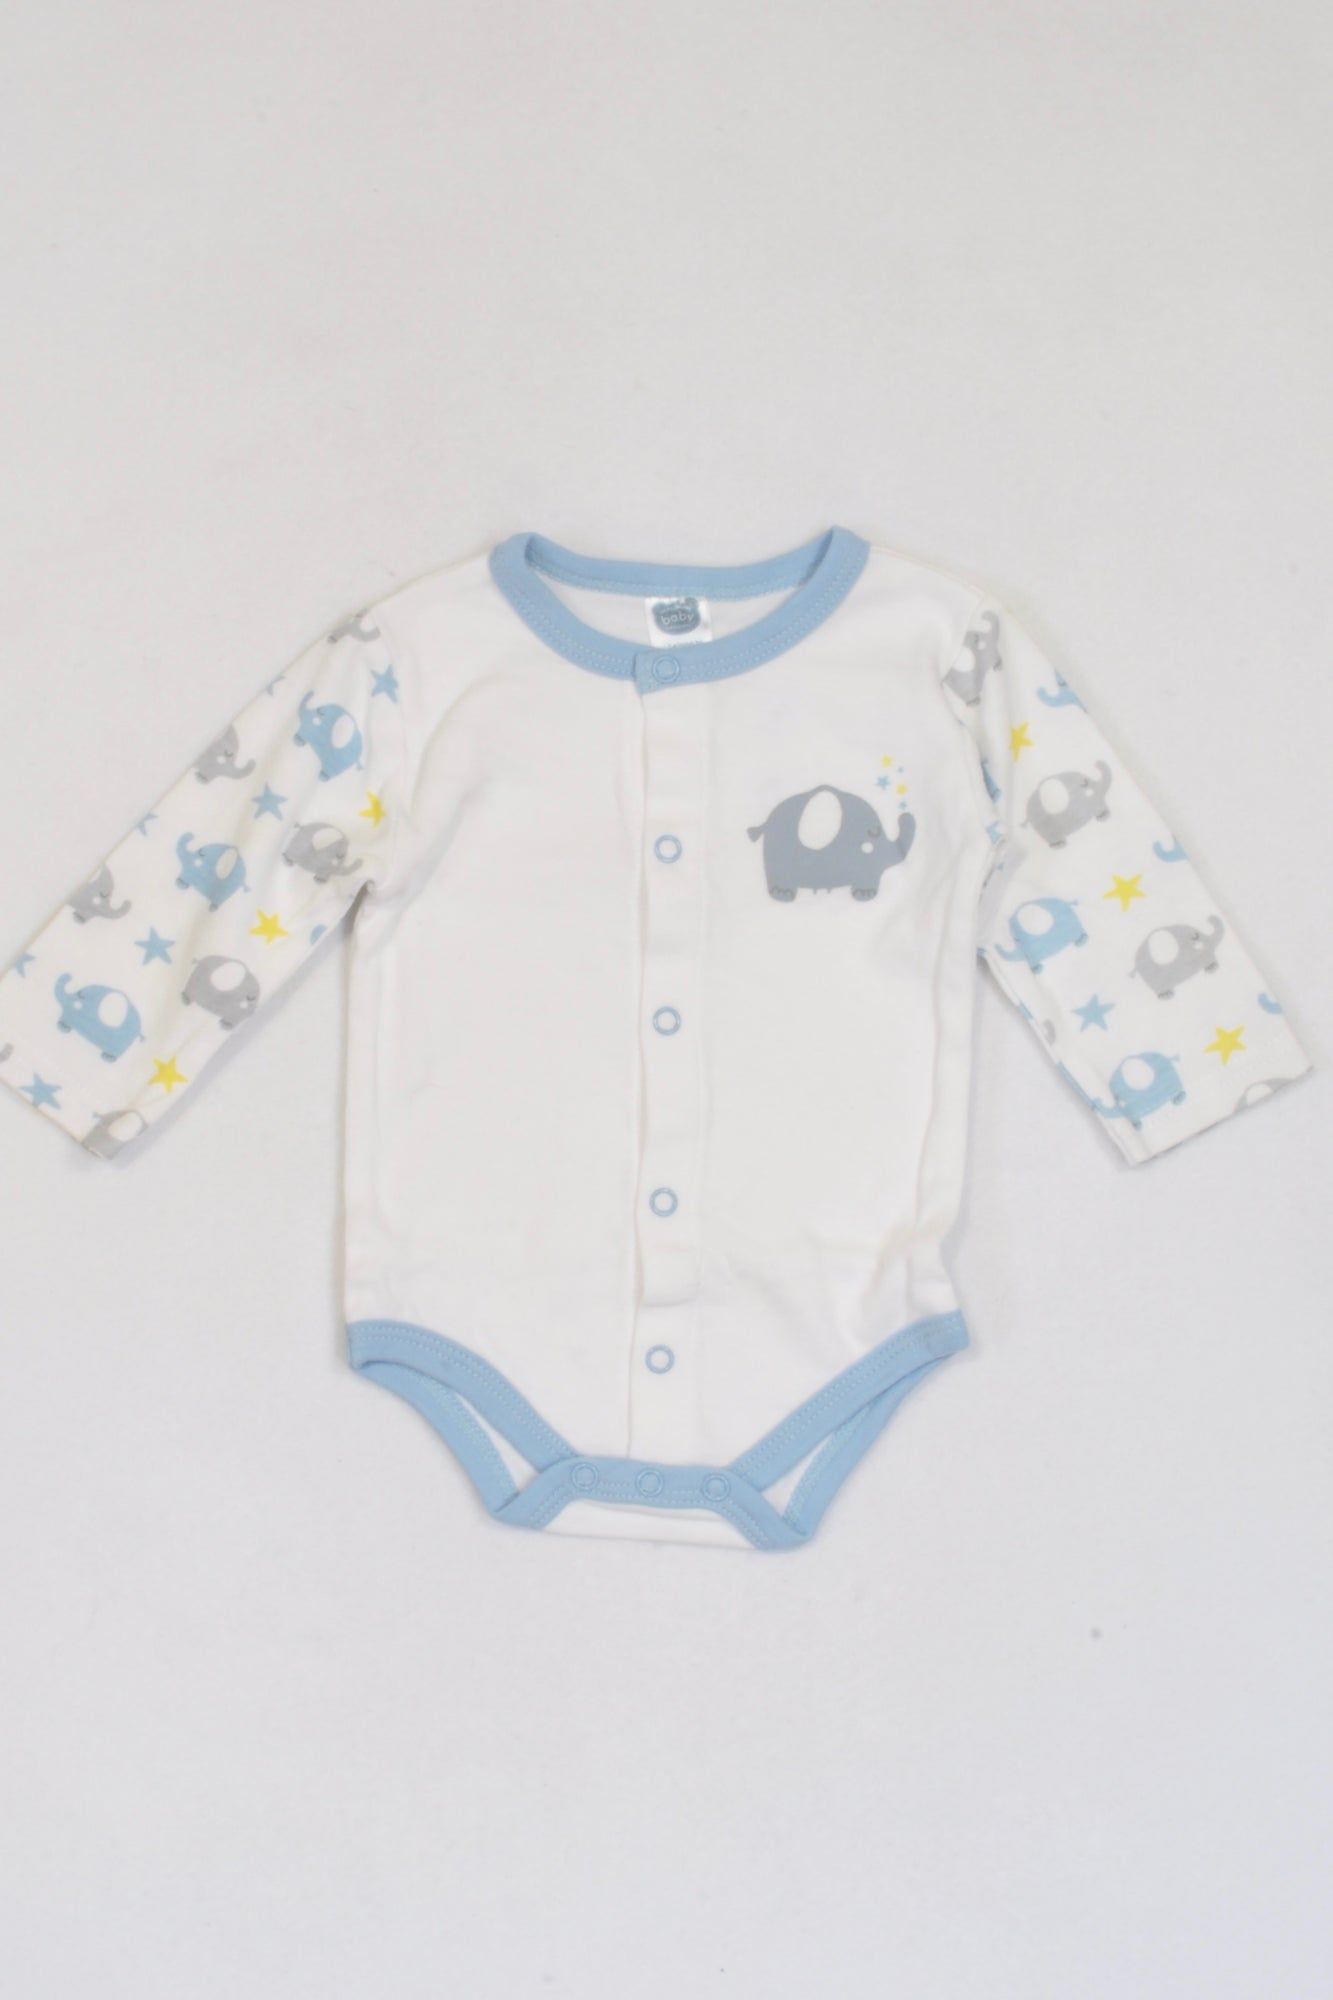 Ackermans Blue Elephant 1 of 2 Baby Grow Boys 0-3 months